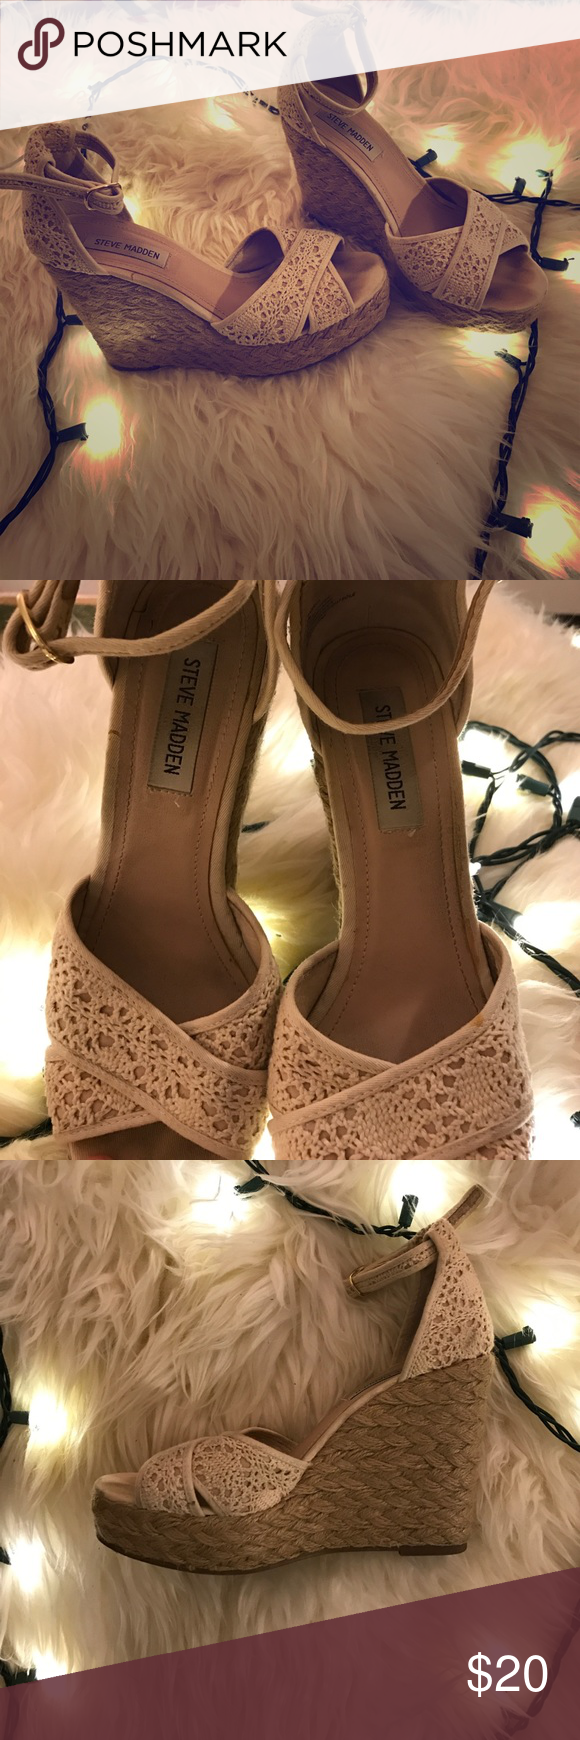 af0b478eea2 ✨Sale✨ Steve Madden Marrvil Crochet Cream Wedges | My Posh Closet ...